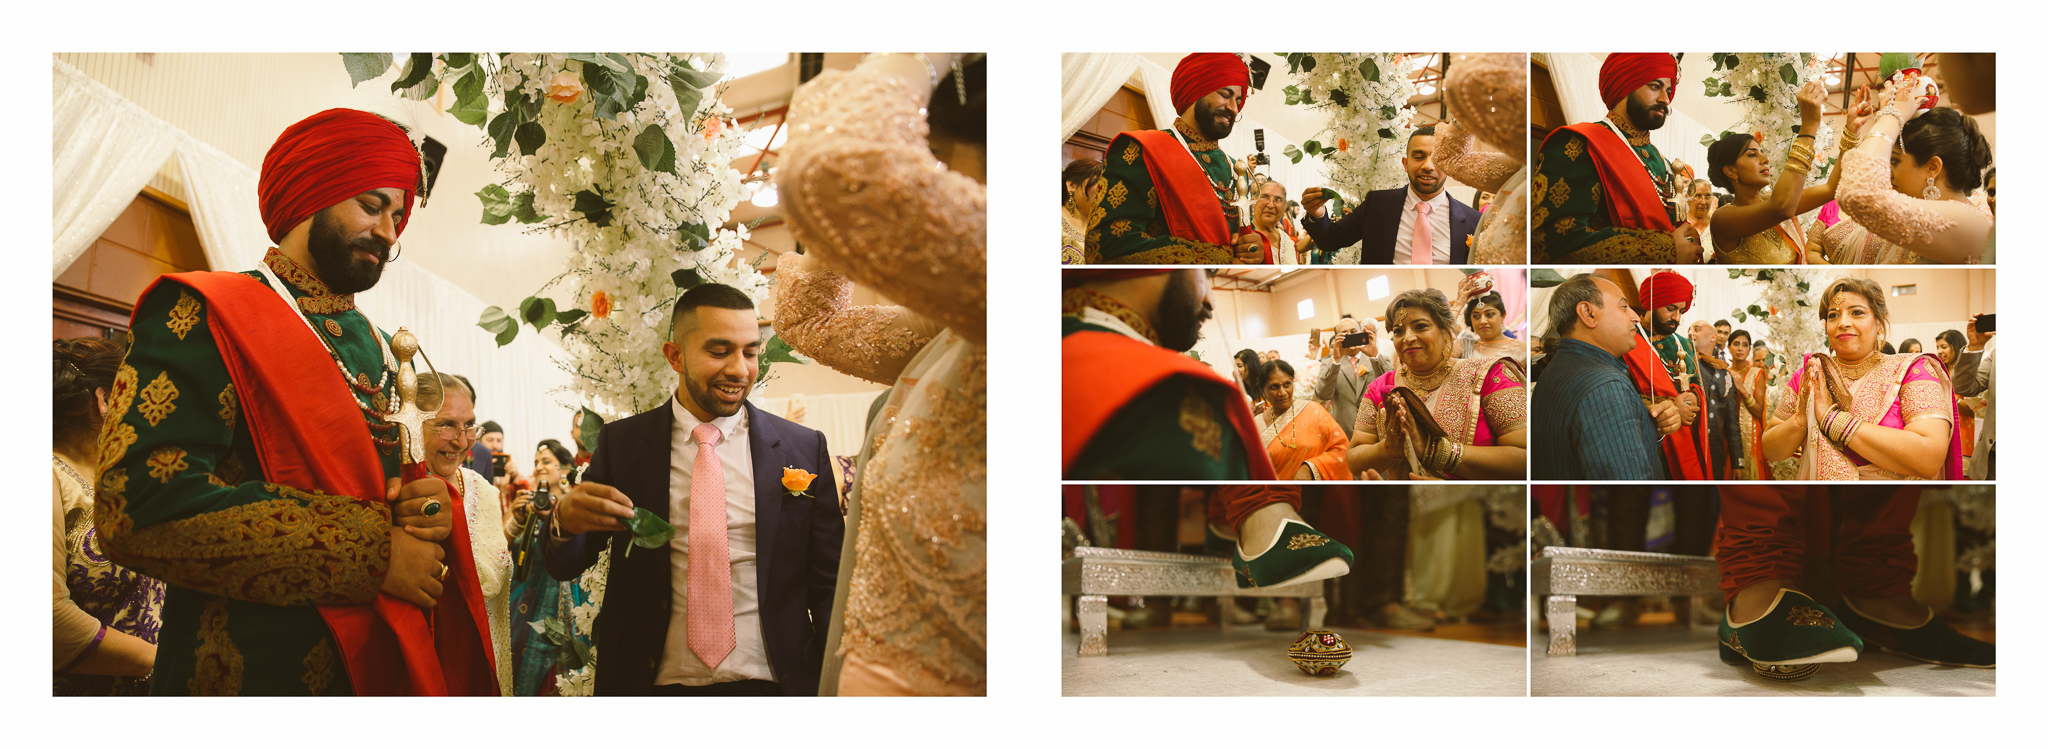 Zohaib Ali_Sikh Wedding_ London 029-030.jpg